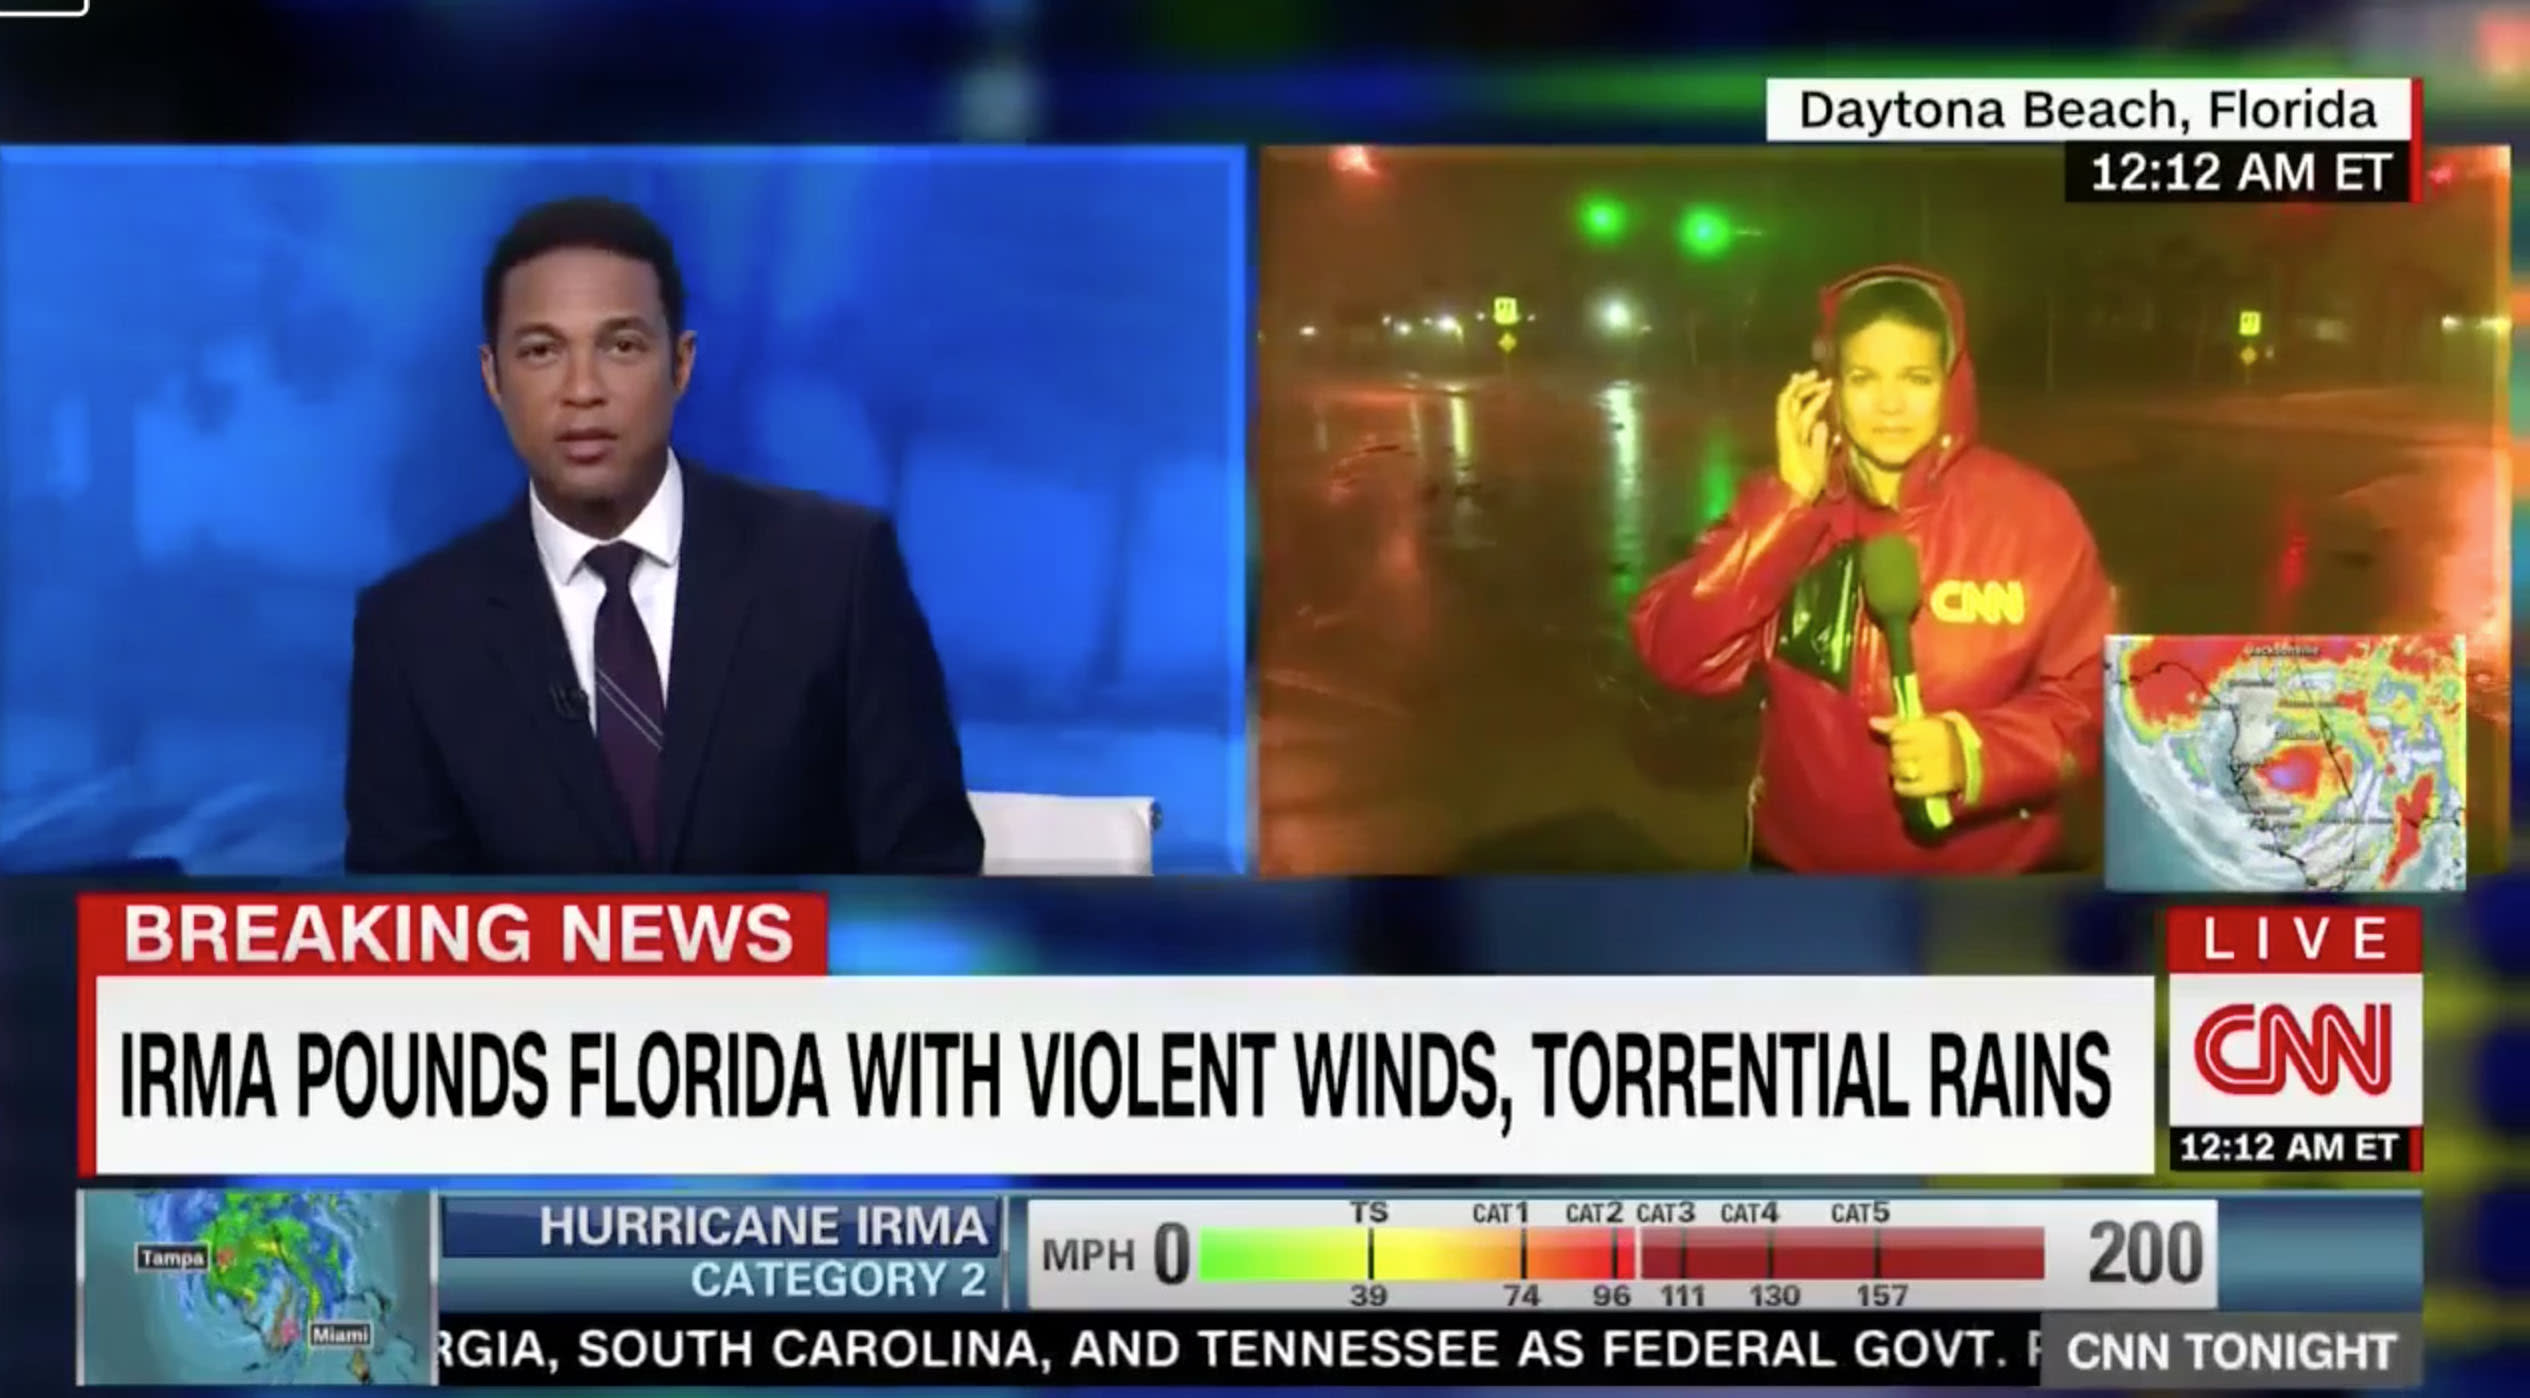 Don Lemon and Sara Sidner.